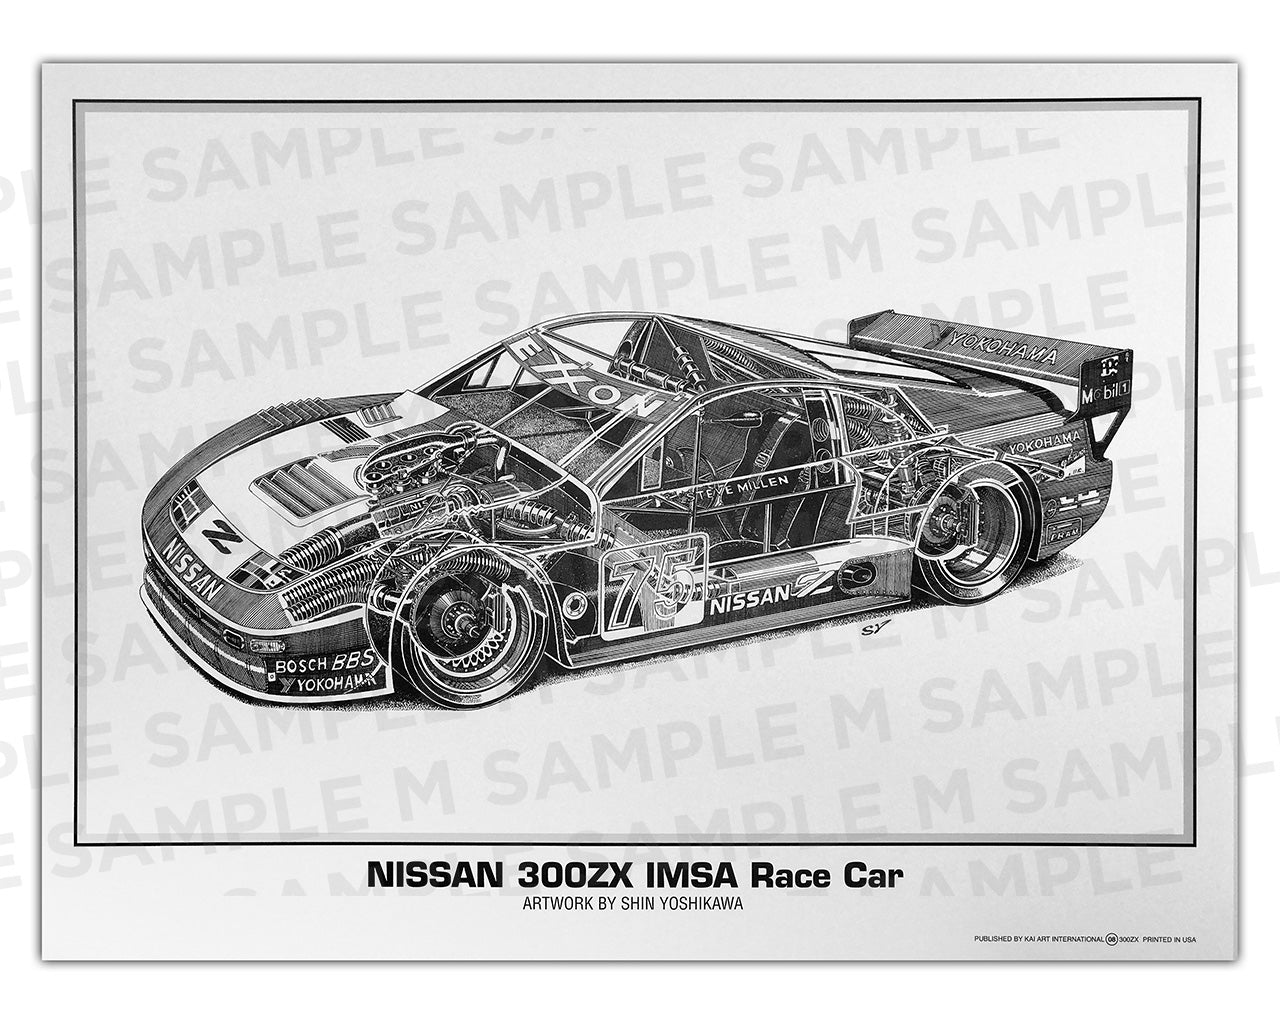 Authentic Nissan (Datsun) 300ZX IMSA cutaway drawing print by renowned automotive artist Shin Yoshikawa